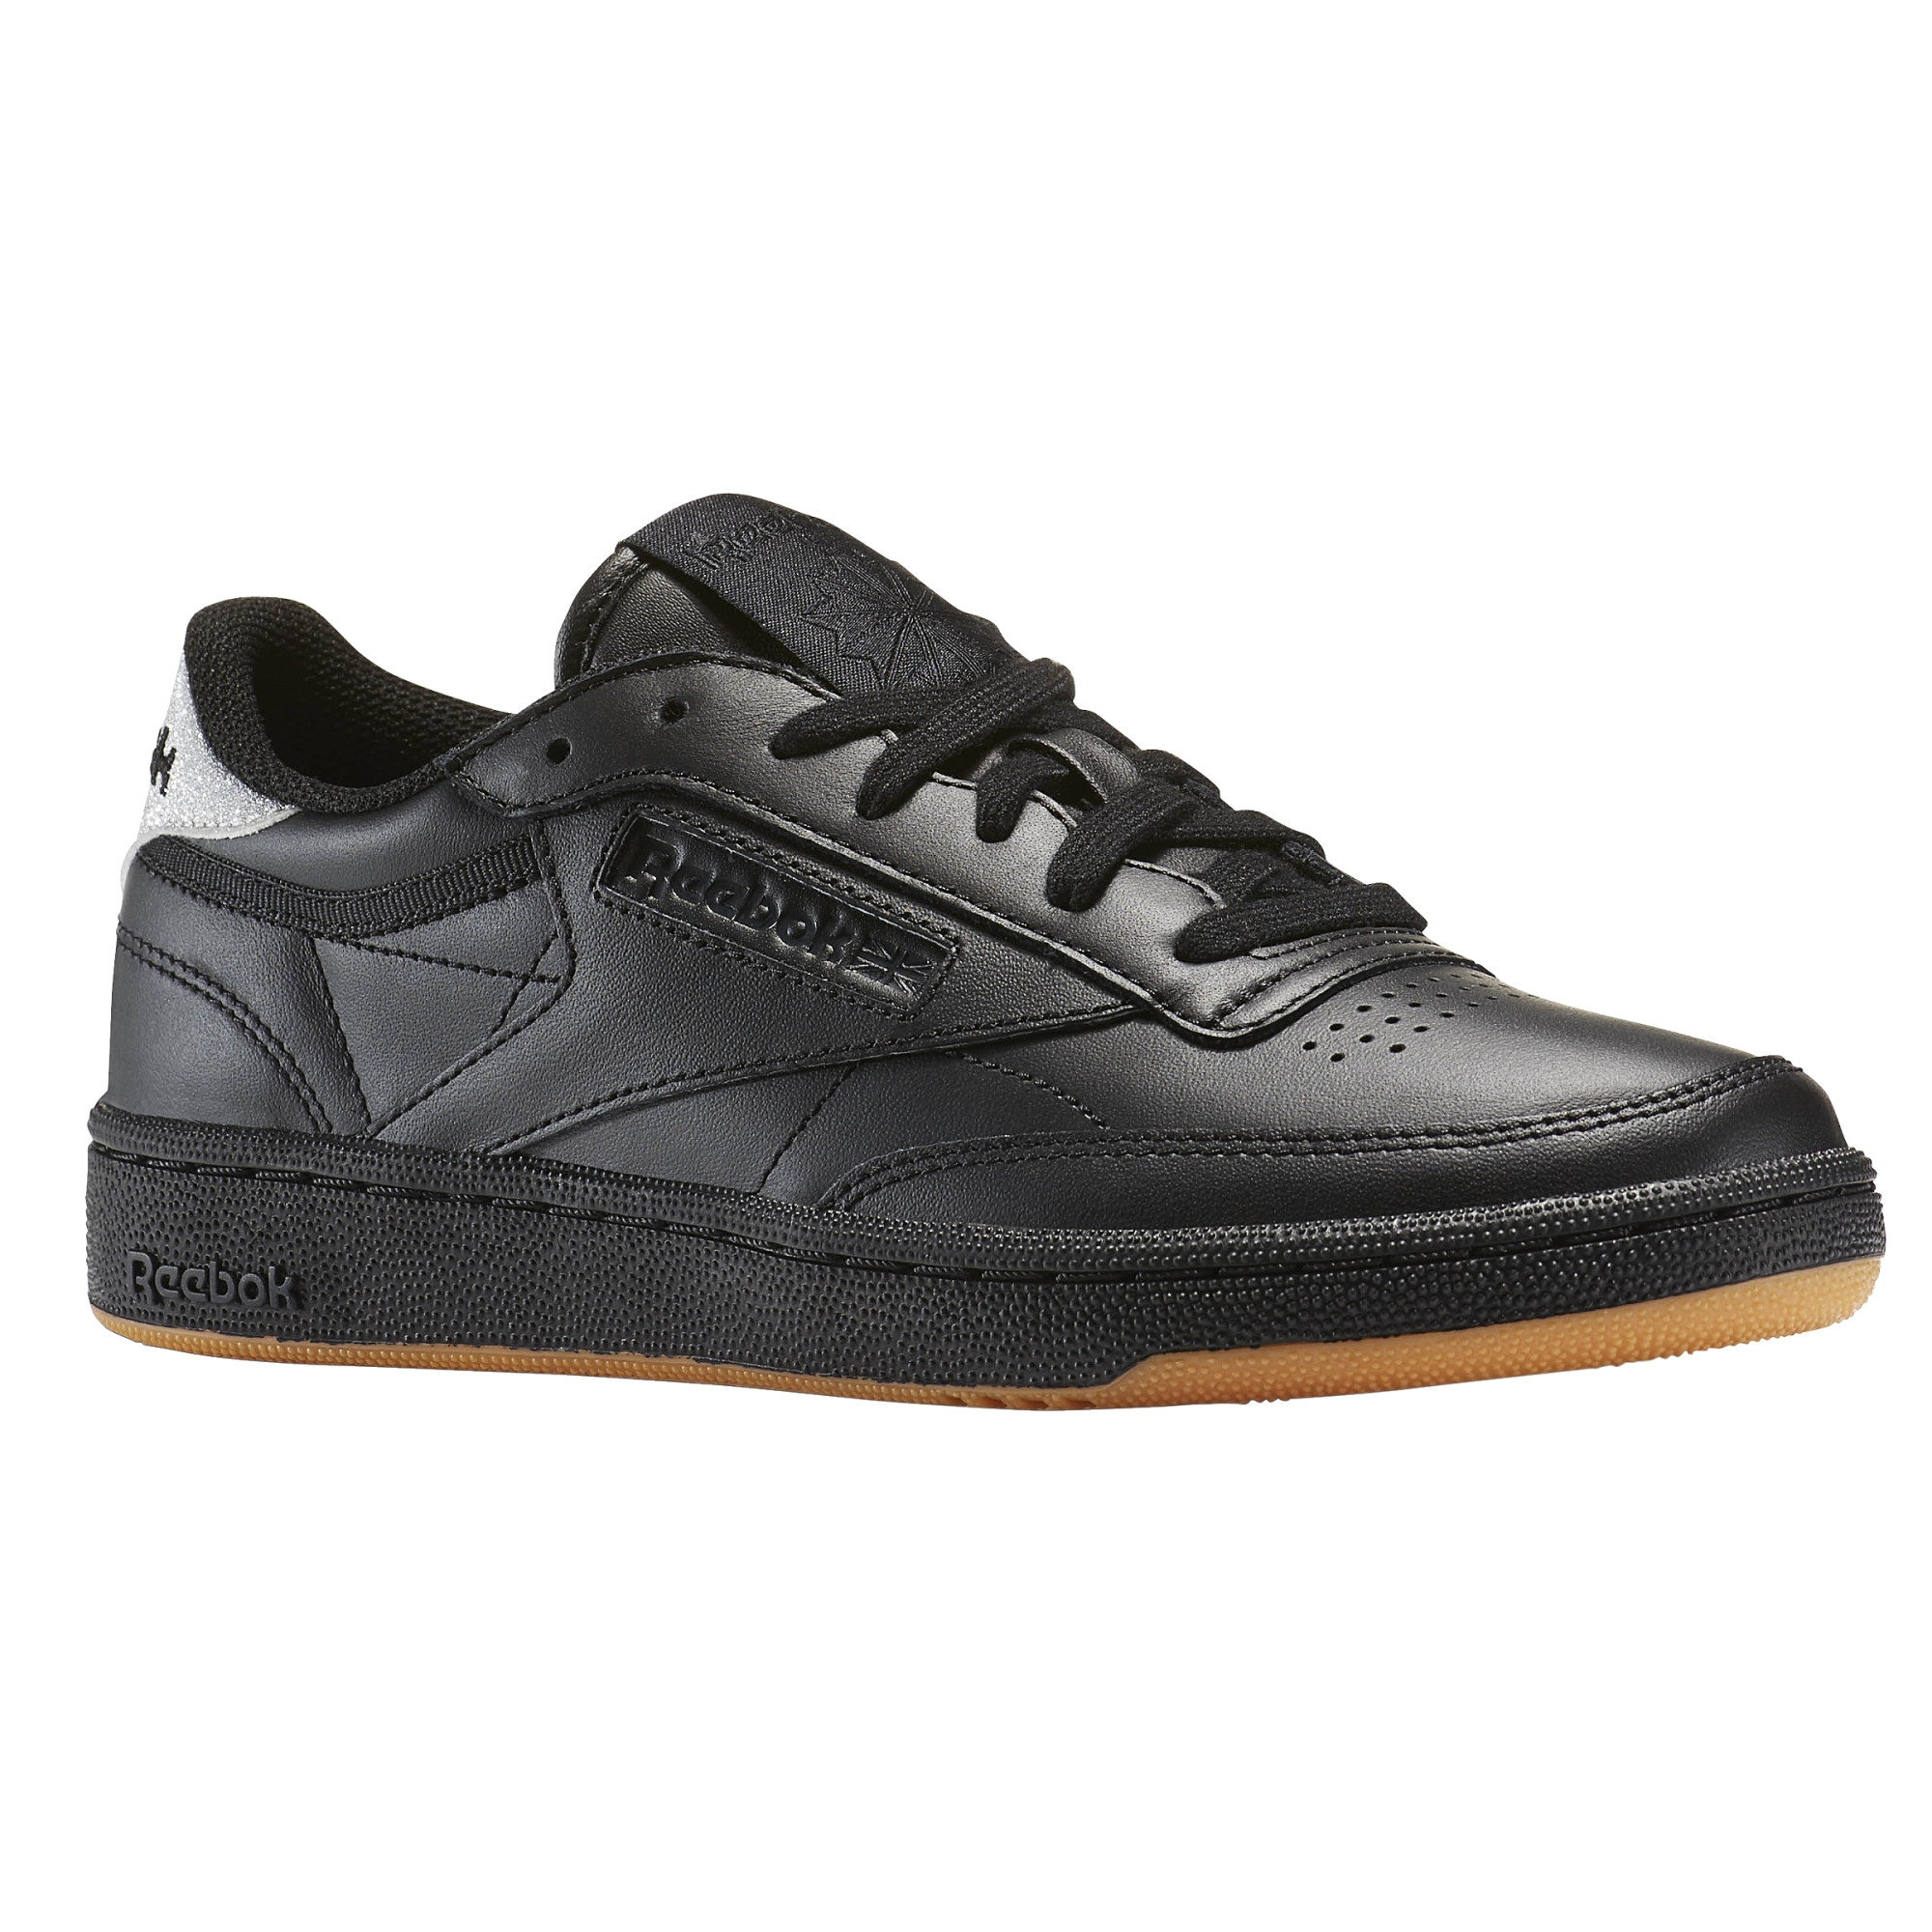 75b24e05c61 ... buty Reebok Club C 85 Diamond Black Gum BD4425 ...